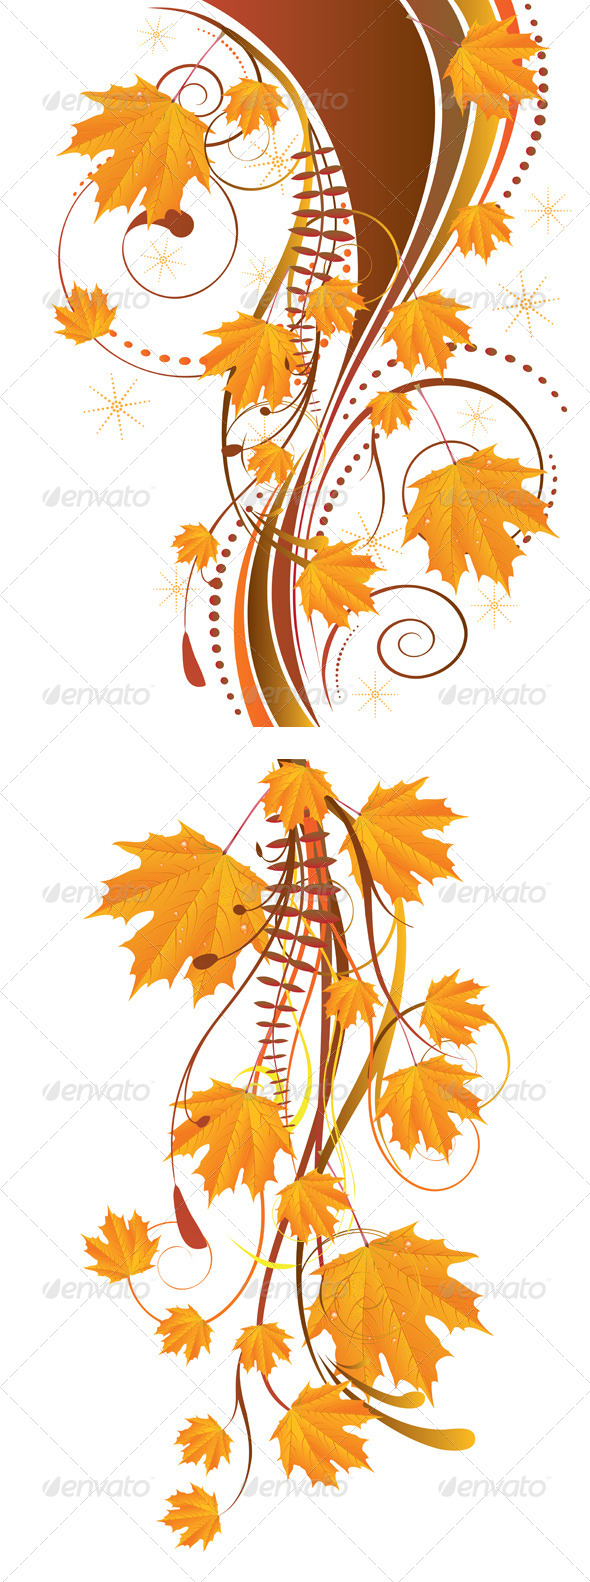 Autumn Ornament with Maple Leaves - Flourishes / Swirls Decorative